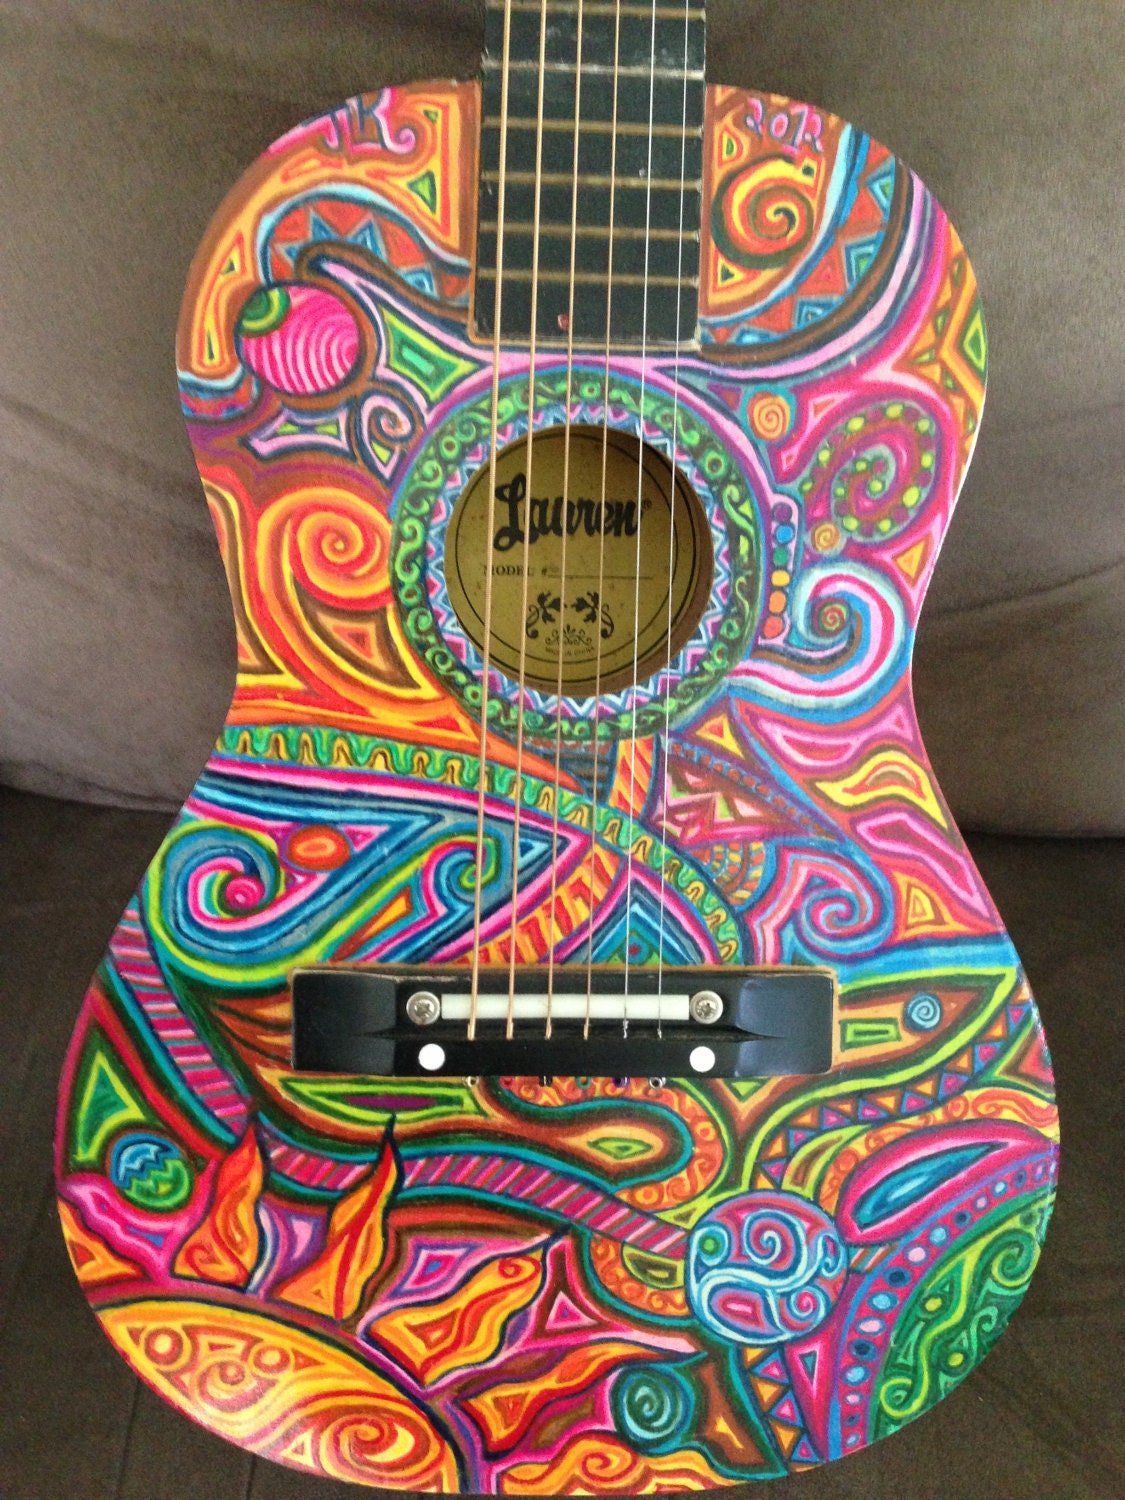 How To Paint A Guitar : hand painted kids guitar ~ Russianpoet.info Haus und Dekorationen